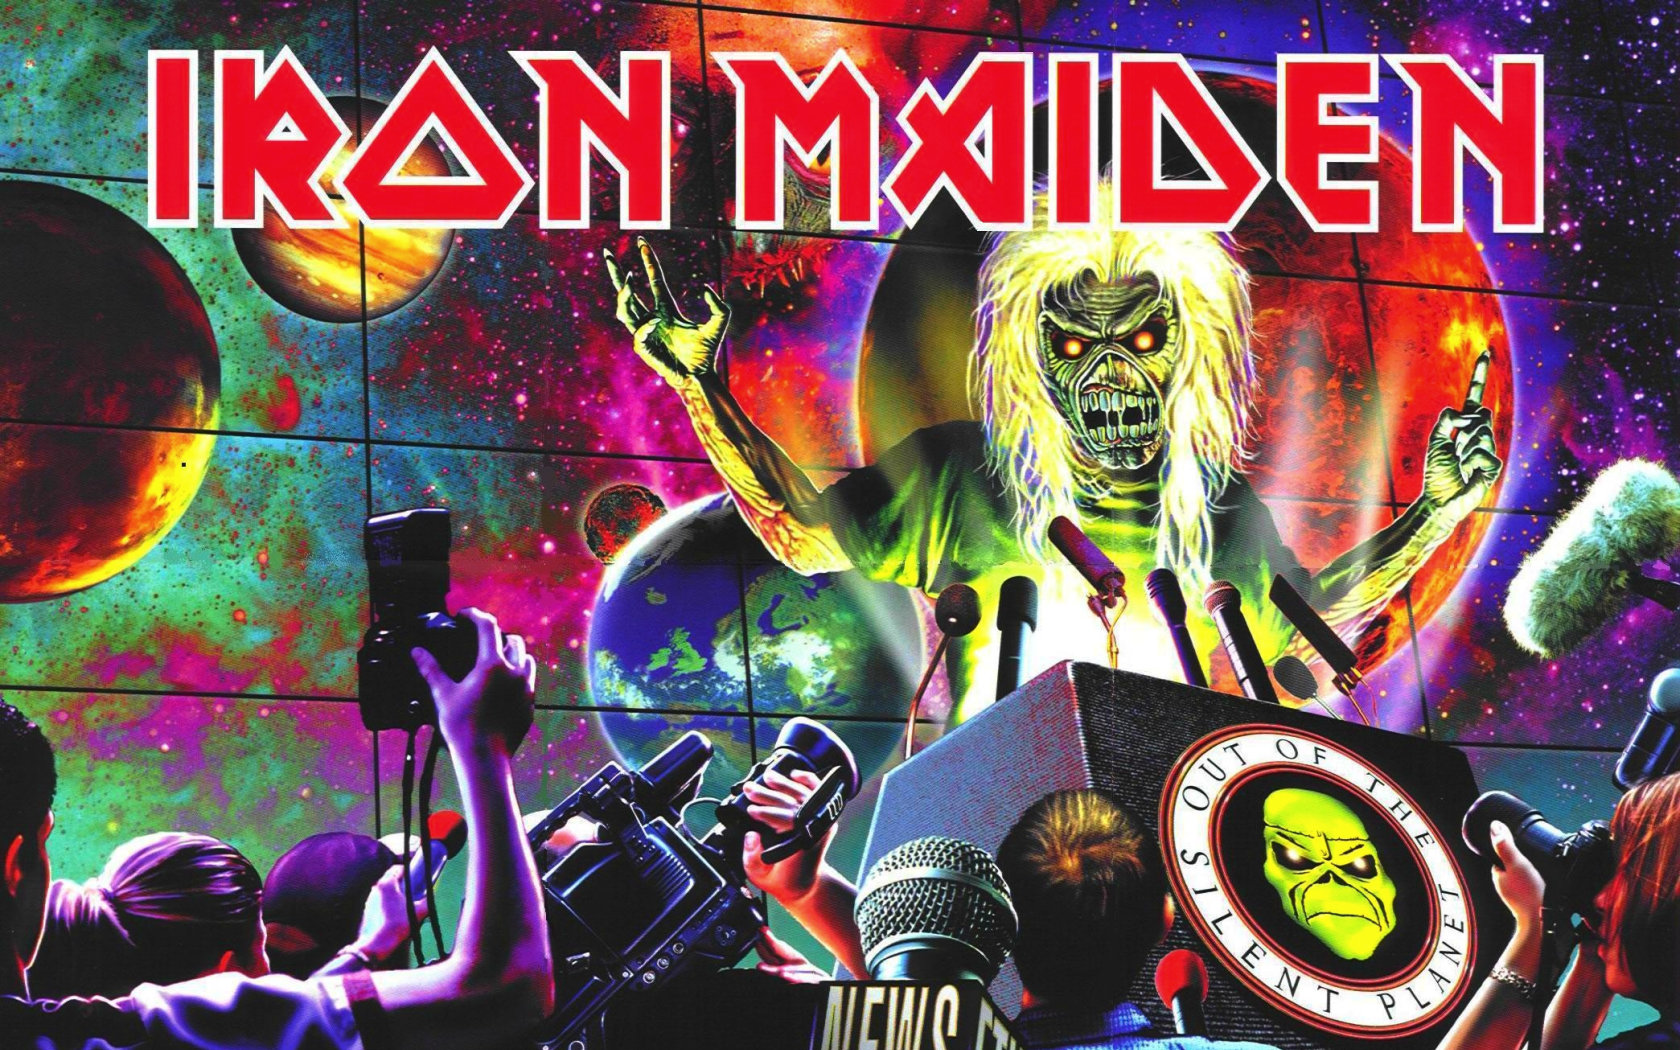 Awesome Iron Maiden Free Wallpaper ID72613 For Hd 1680x1050 PC